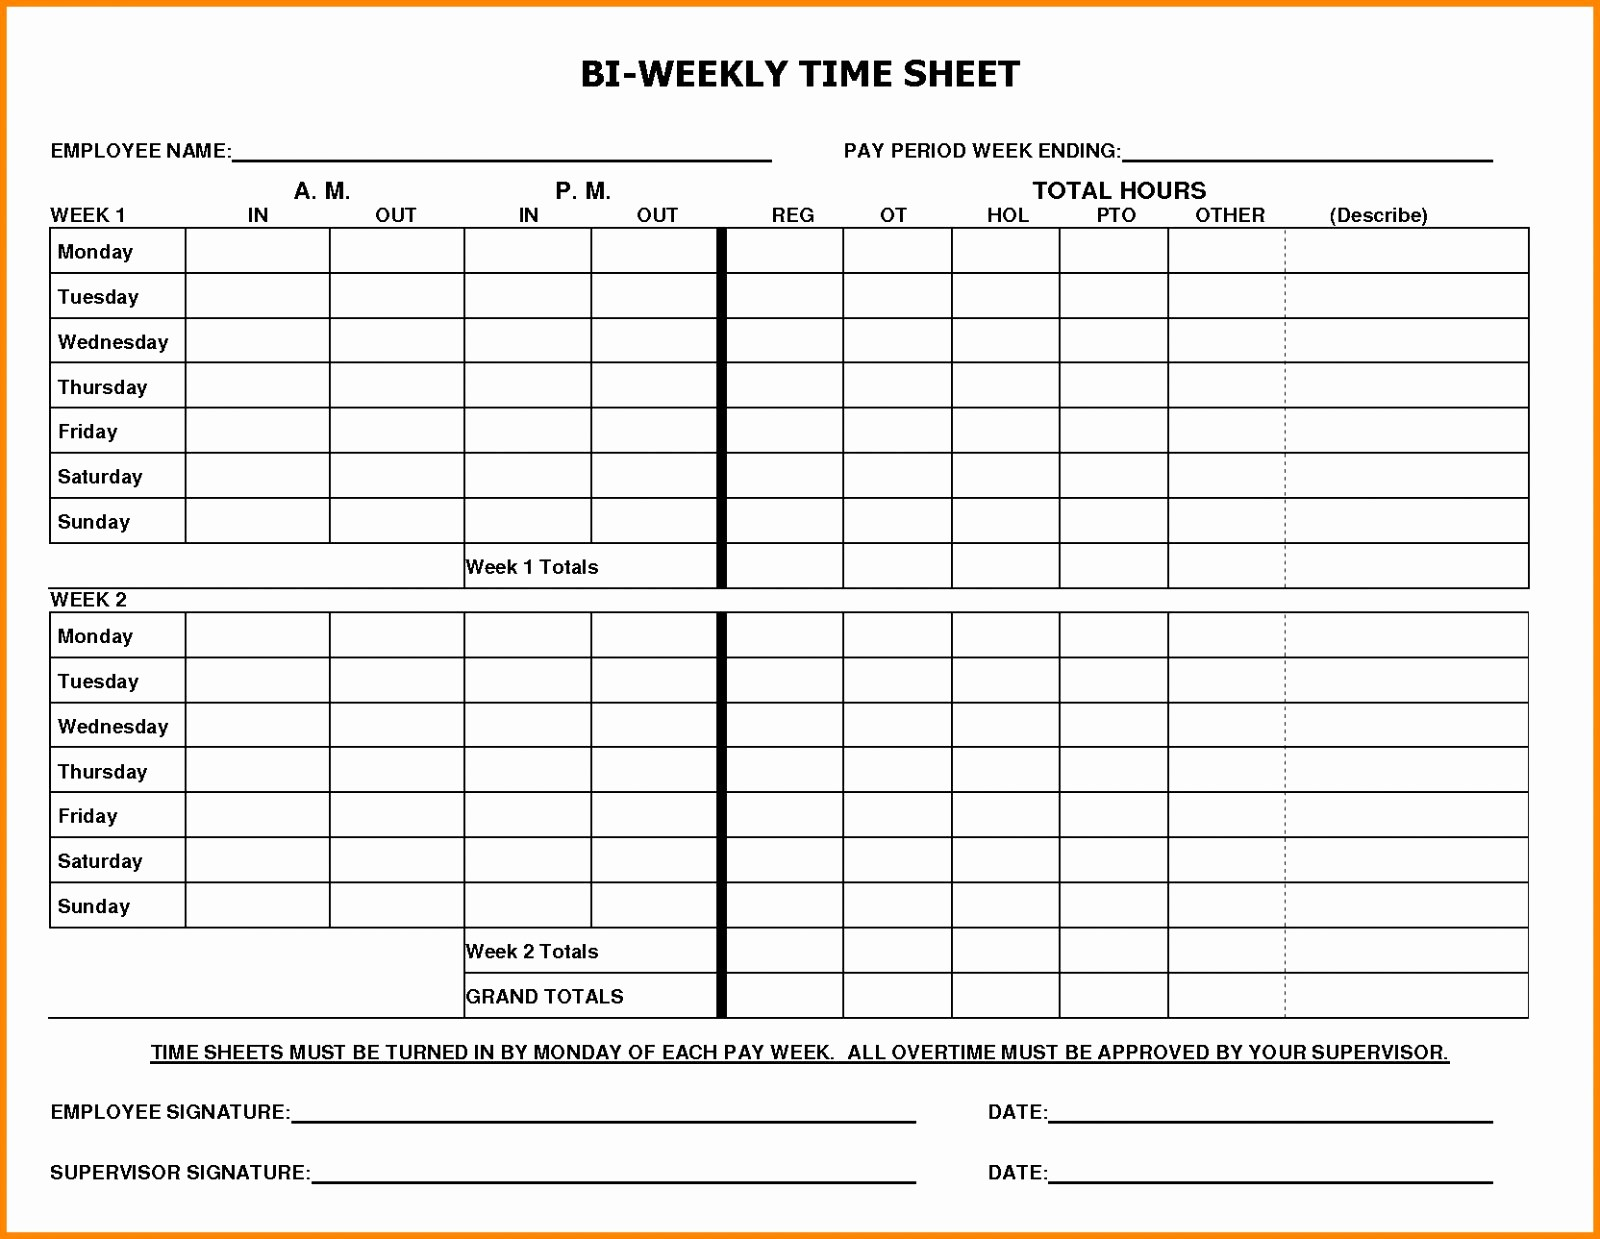 Calculate Time Card In Excel Awesome Free Bi Weekly Time Card Calculator with Lunch Biweekly